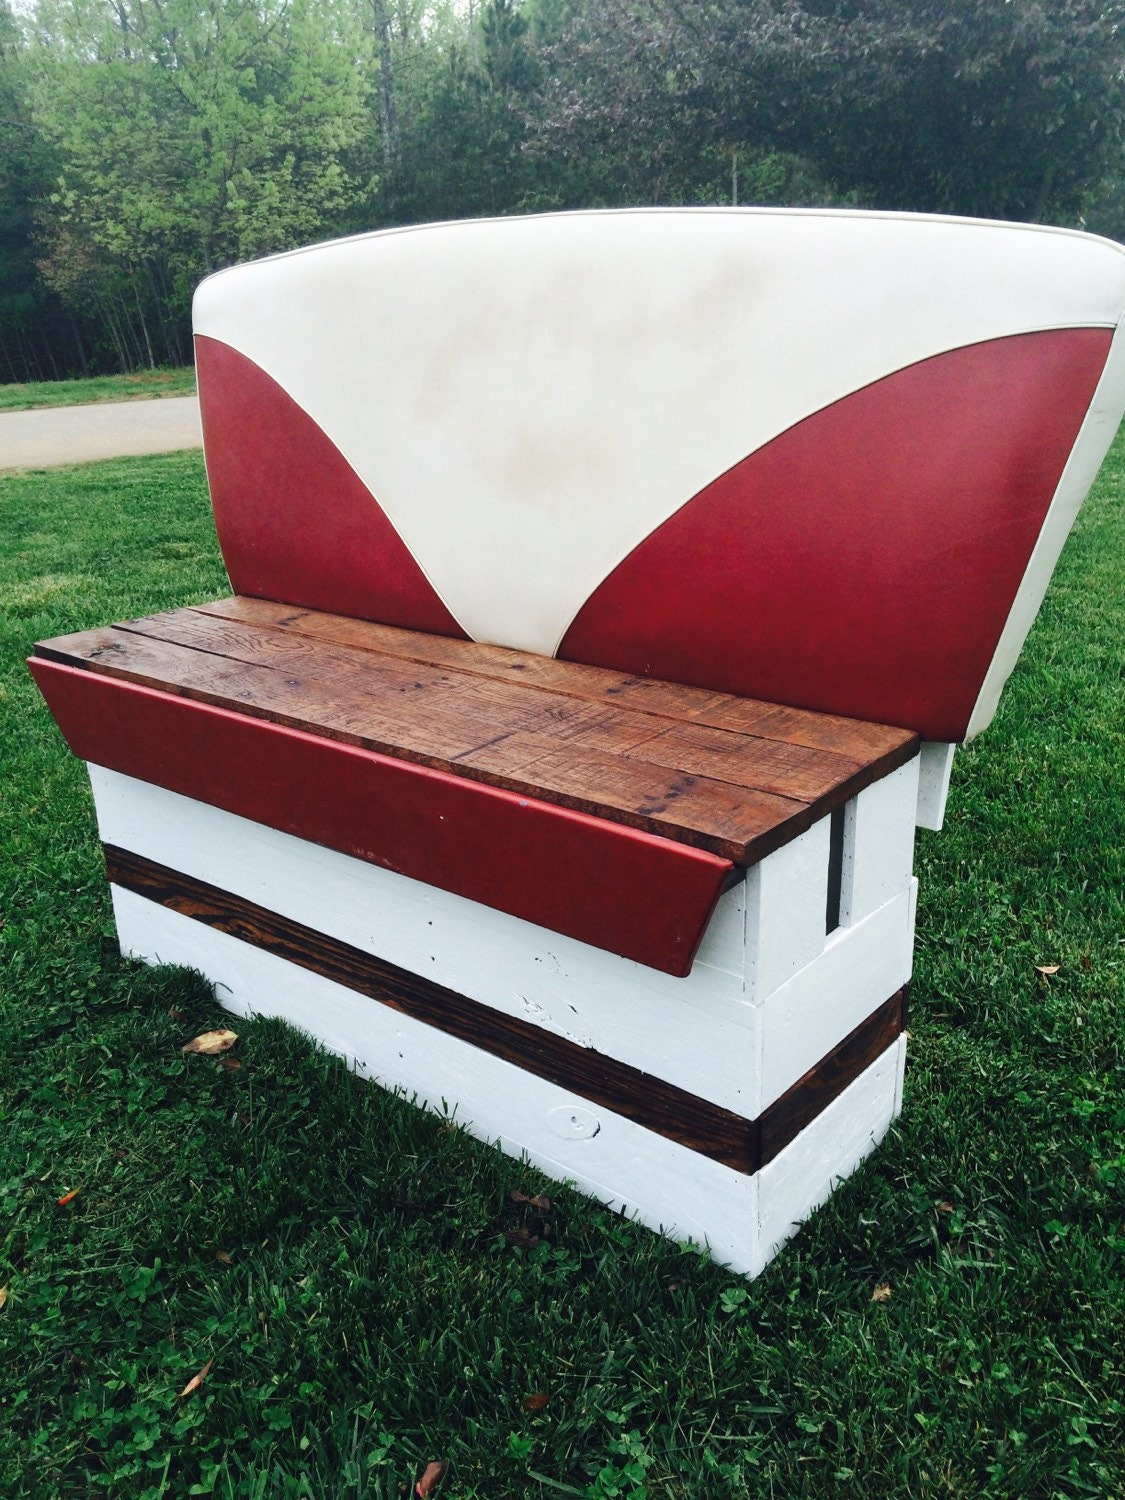 Bench Seat For A 1997 Ford Ranger Bench Seat For A Boat